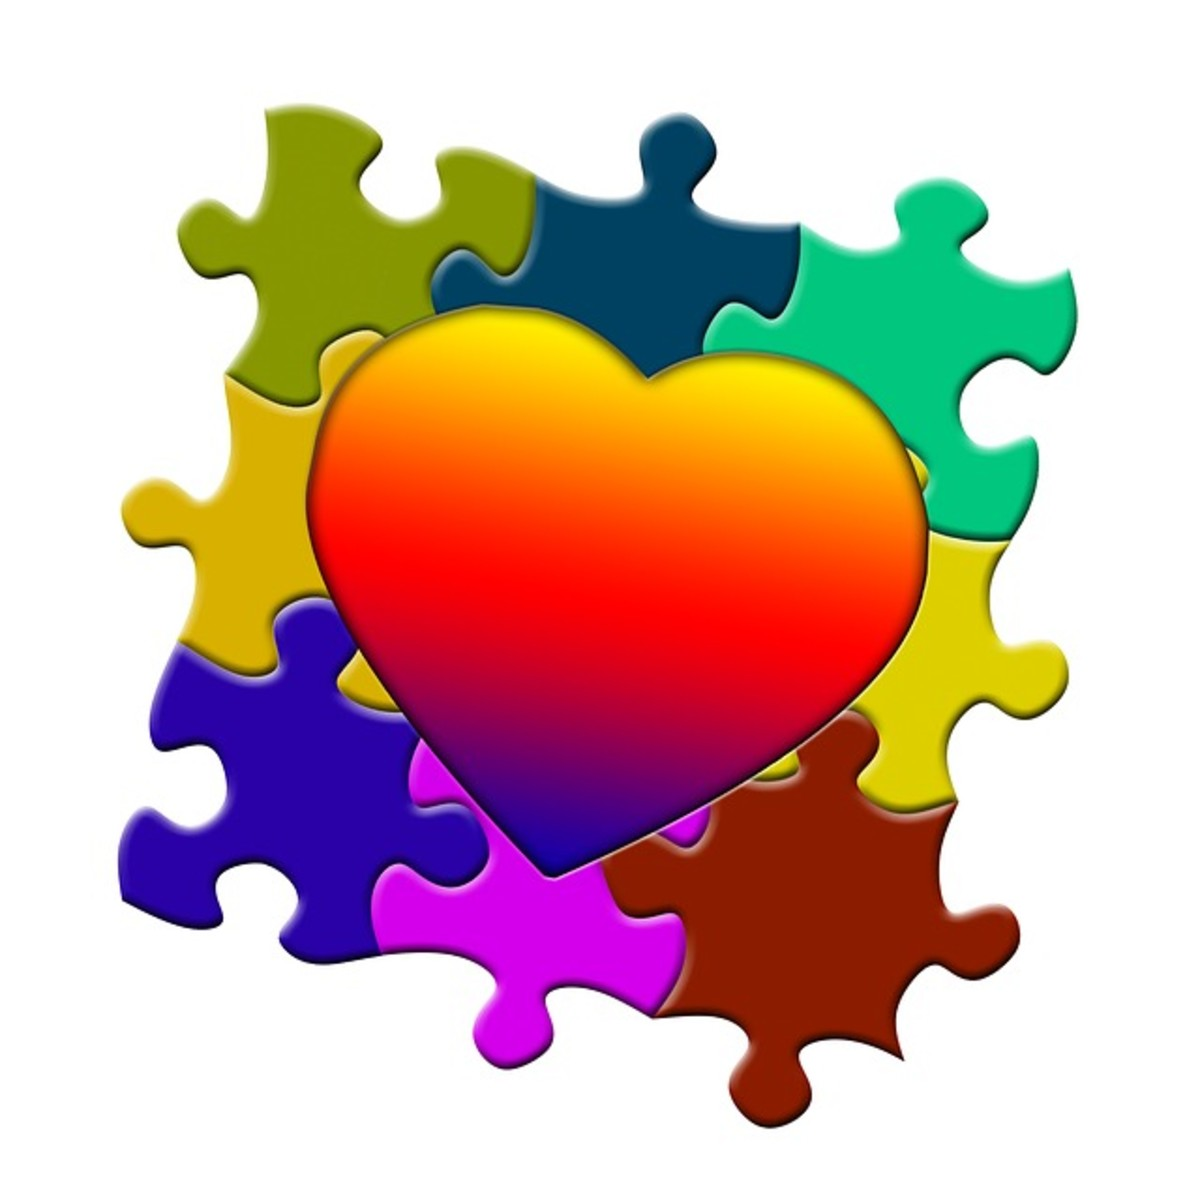 God's abiding love within us, shared with each other, is the key to feeling complete and whole.